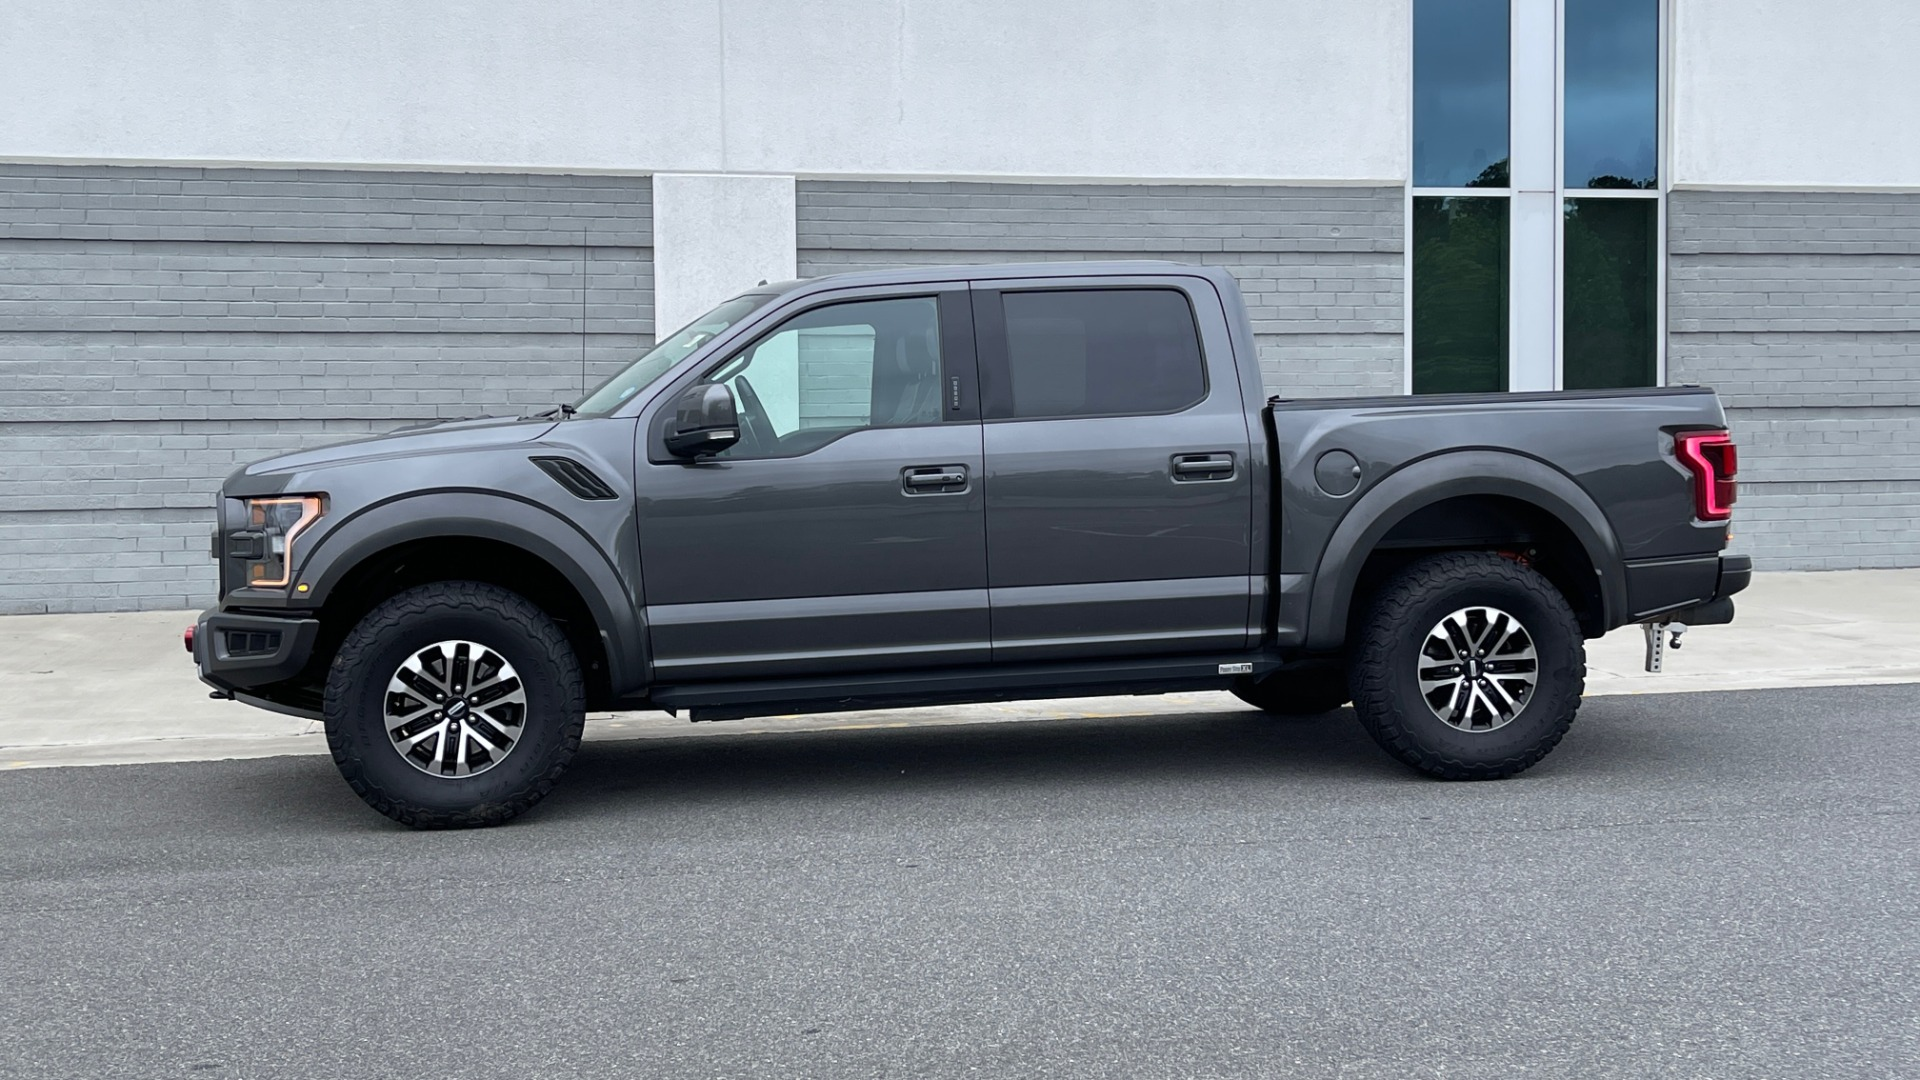 Used 2020 Ford F-150 RAPTOR 4X4 SUPERCREW / NAV / B&O SOUND / SUNROOF / REARVIEW for sale $74,900 at Formula Imports in Charlotte NC 28227 4